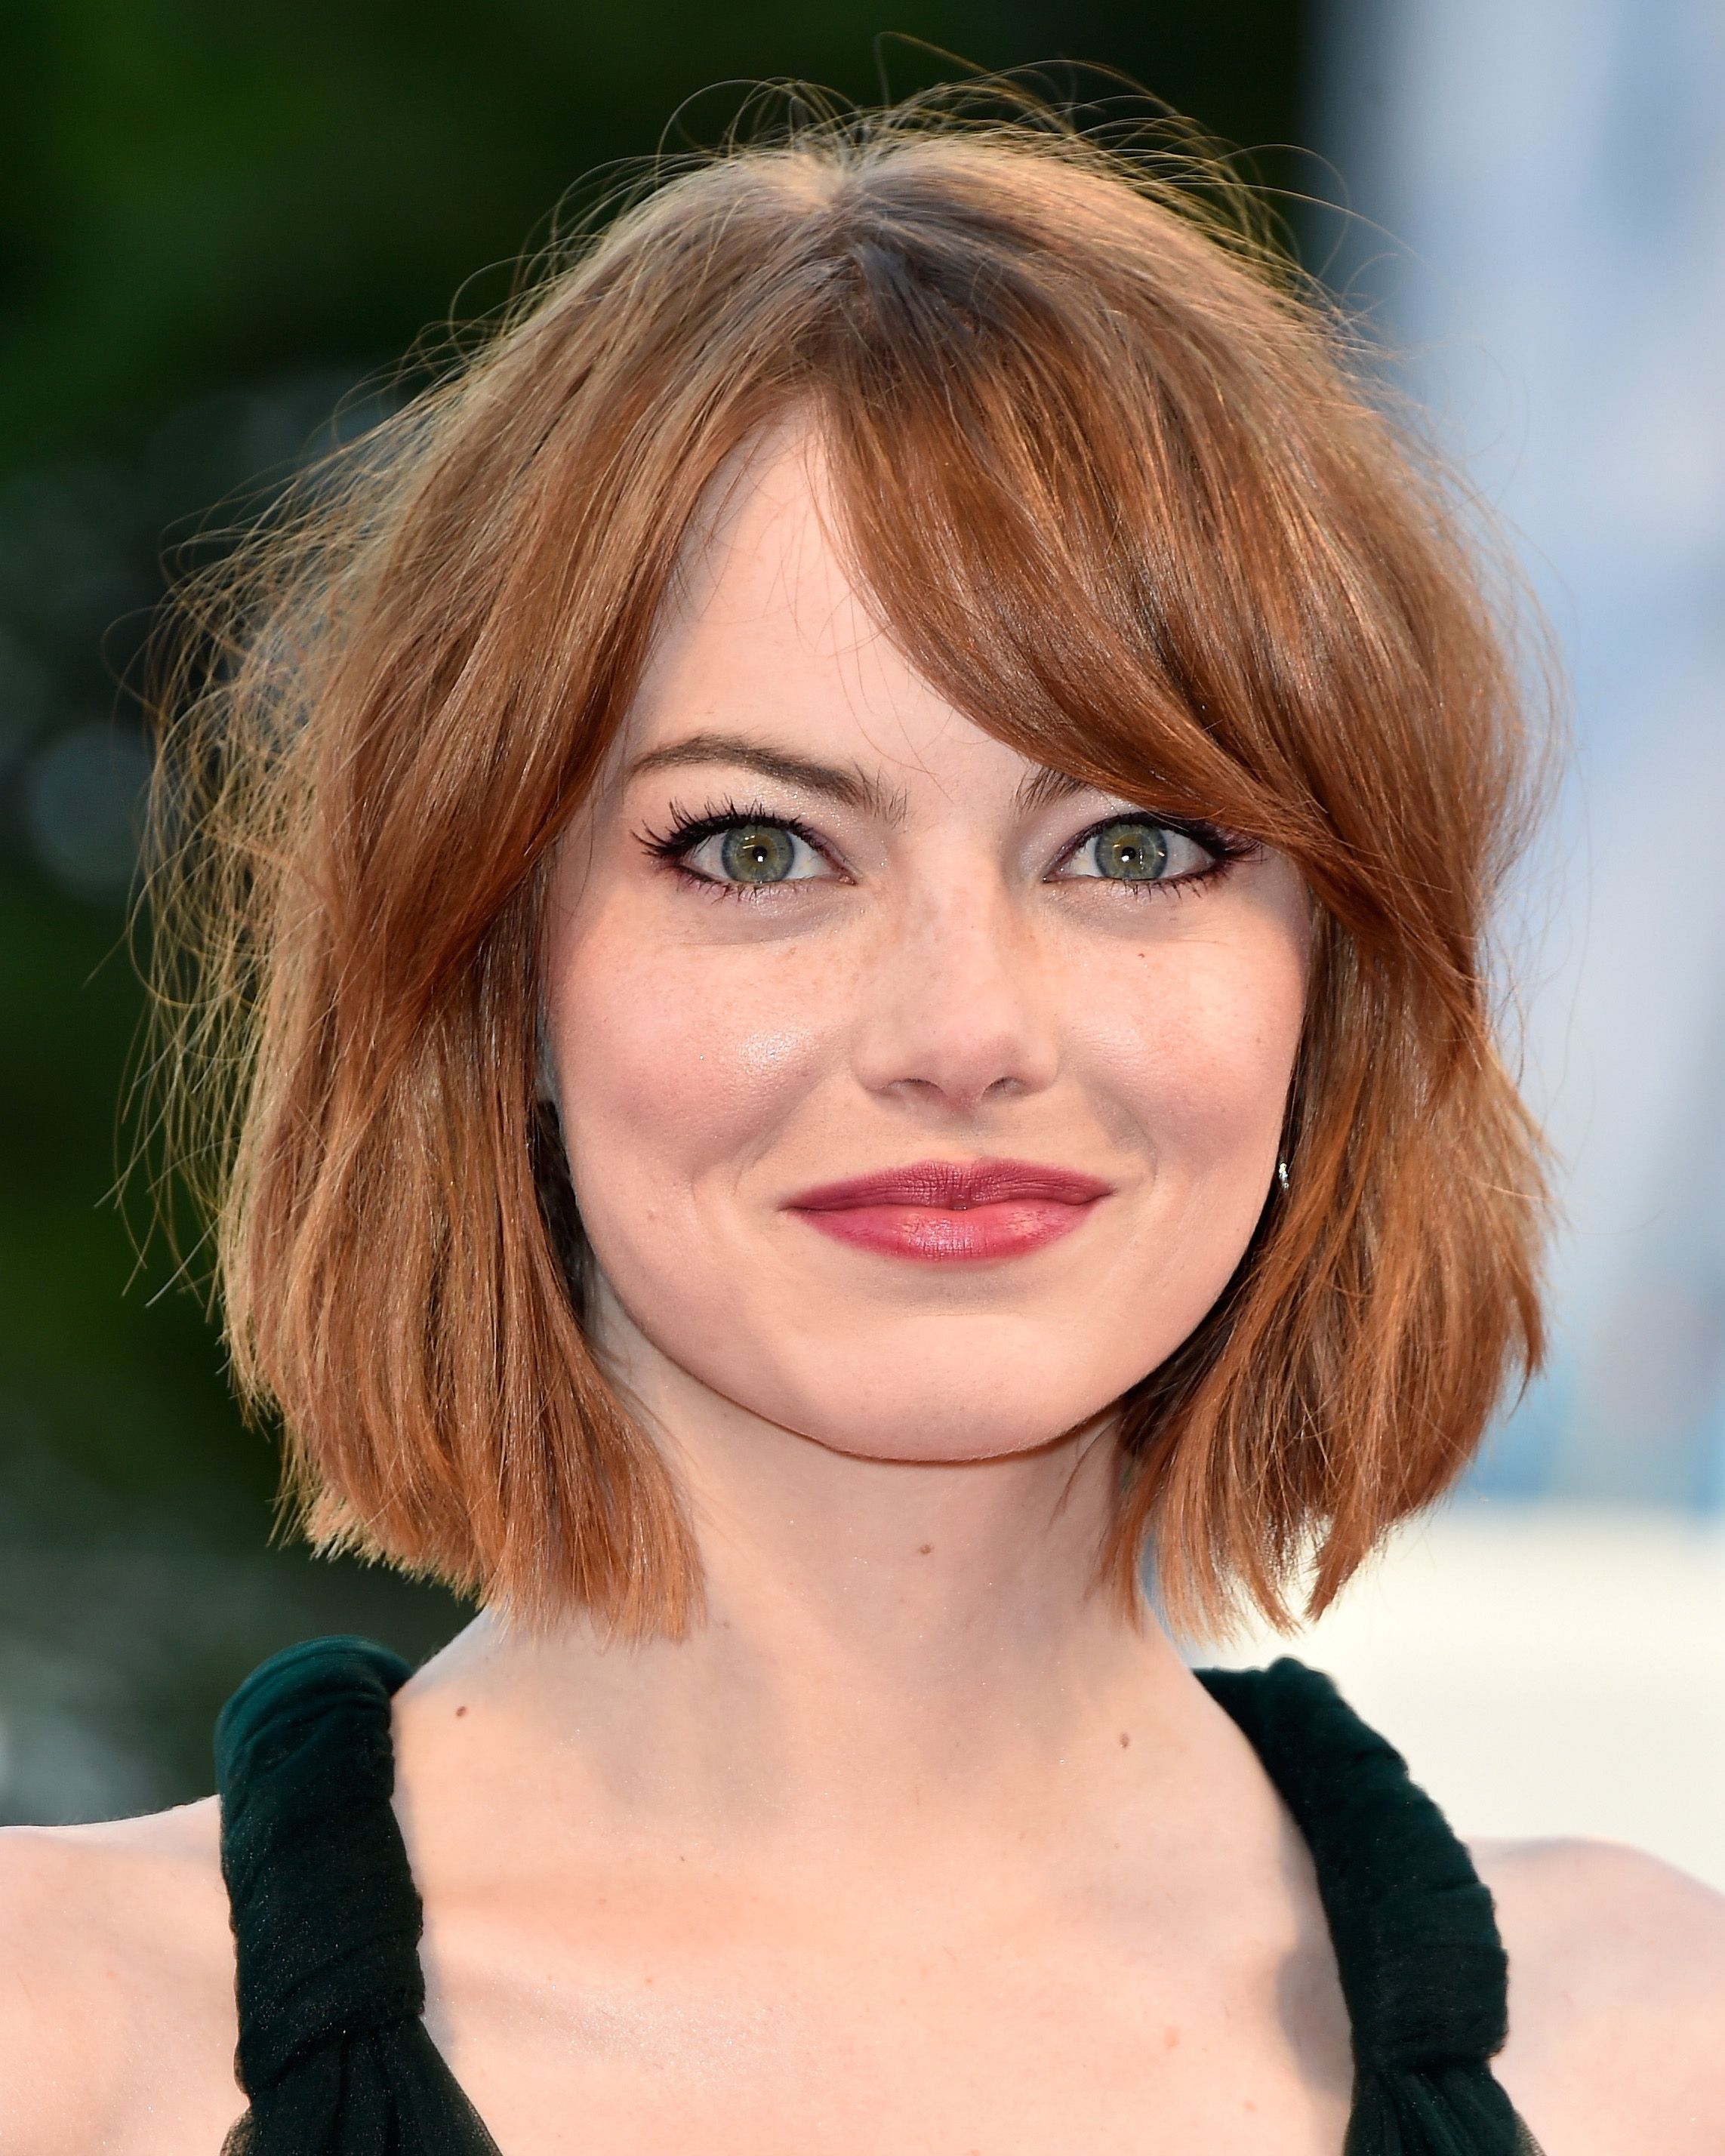 30 Best Short Hair Styles Bobs Pixie Cutore Celebrity Hairstyles For